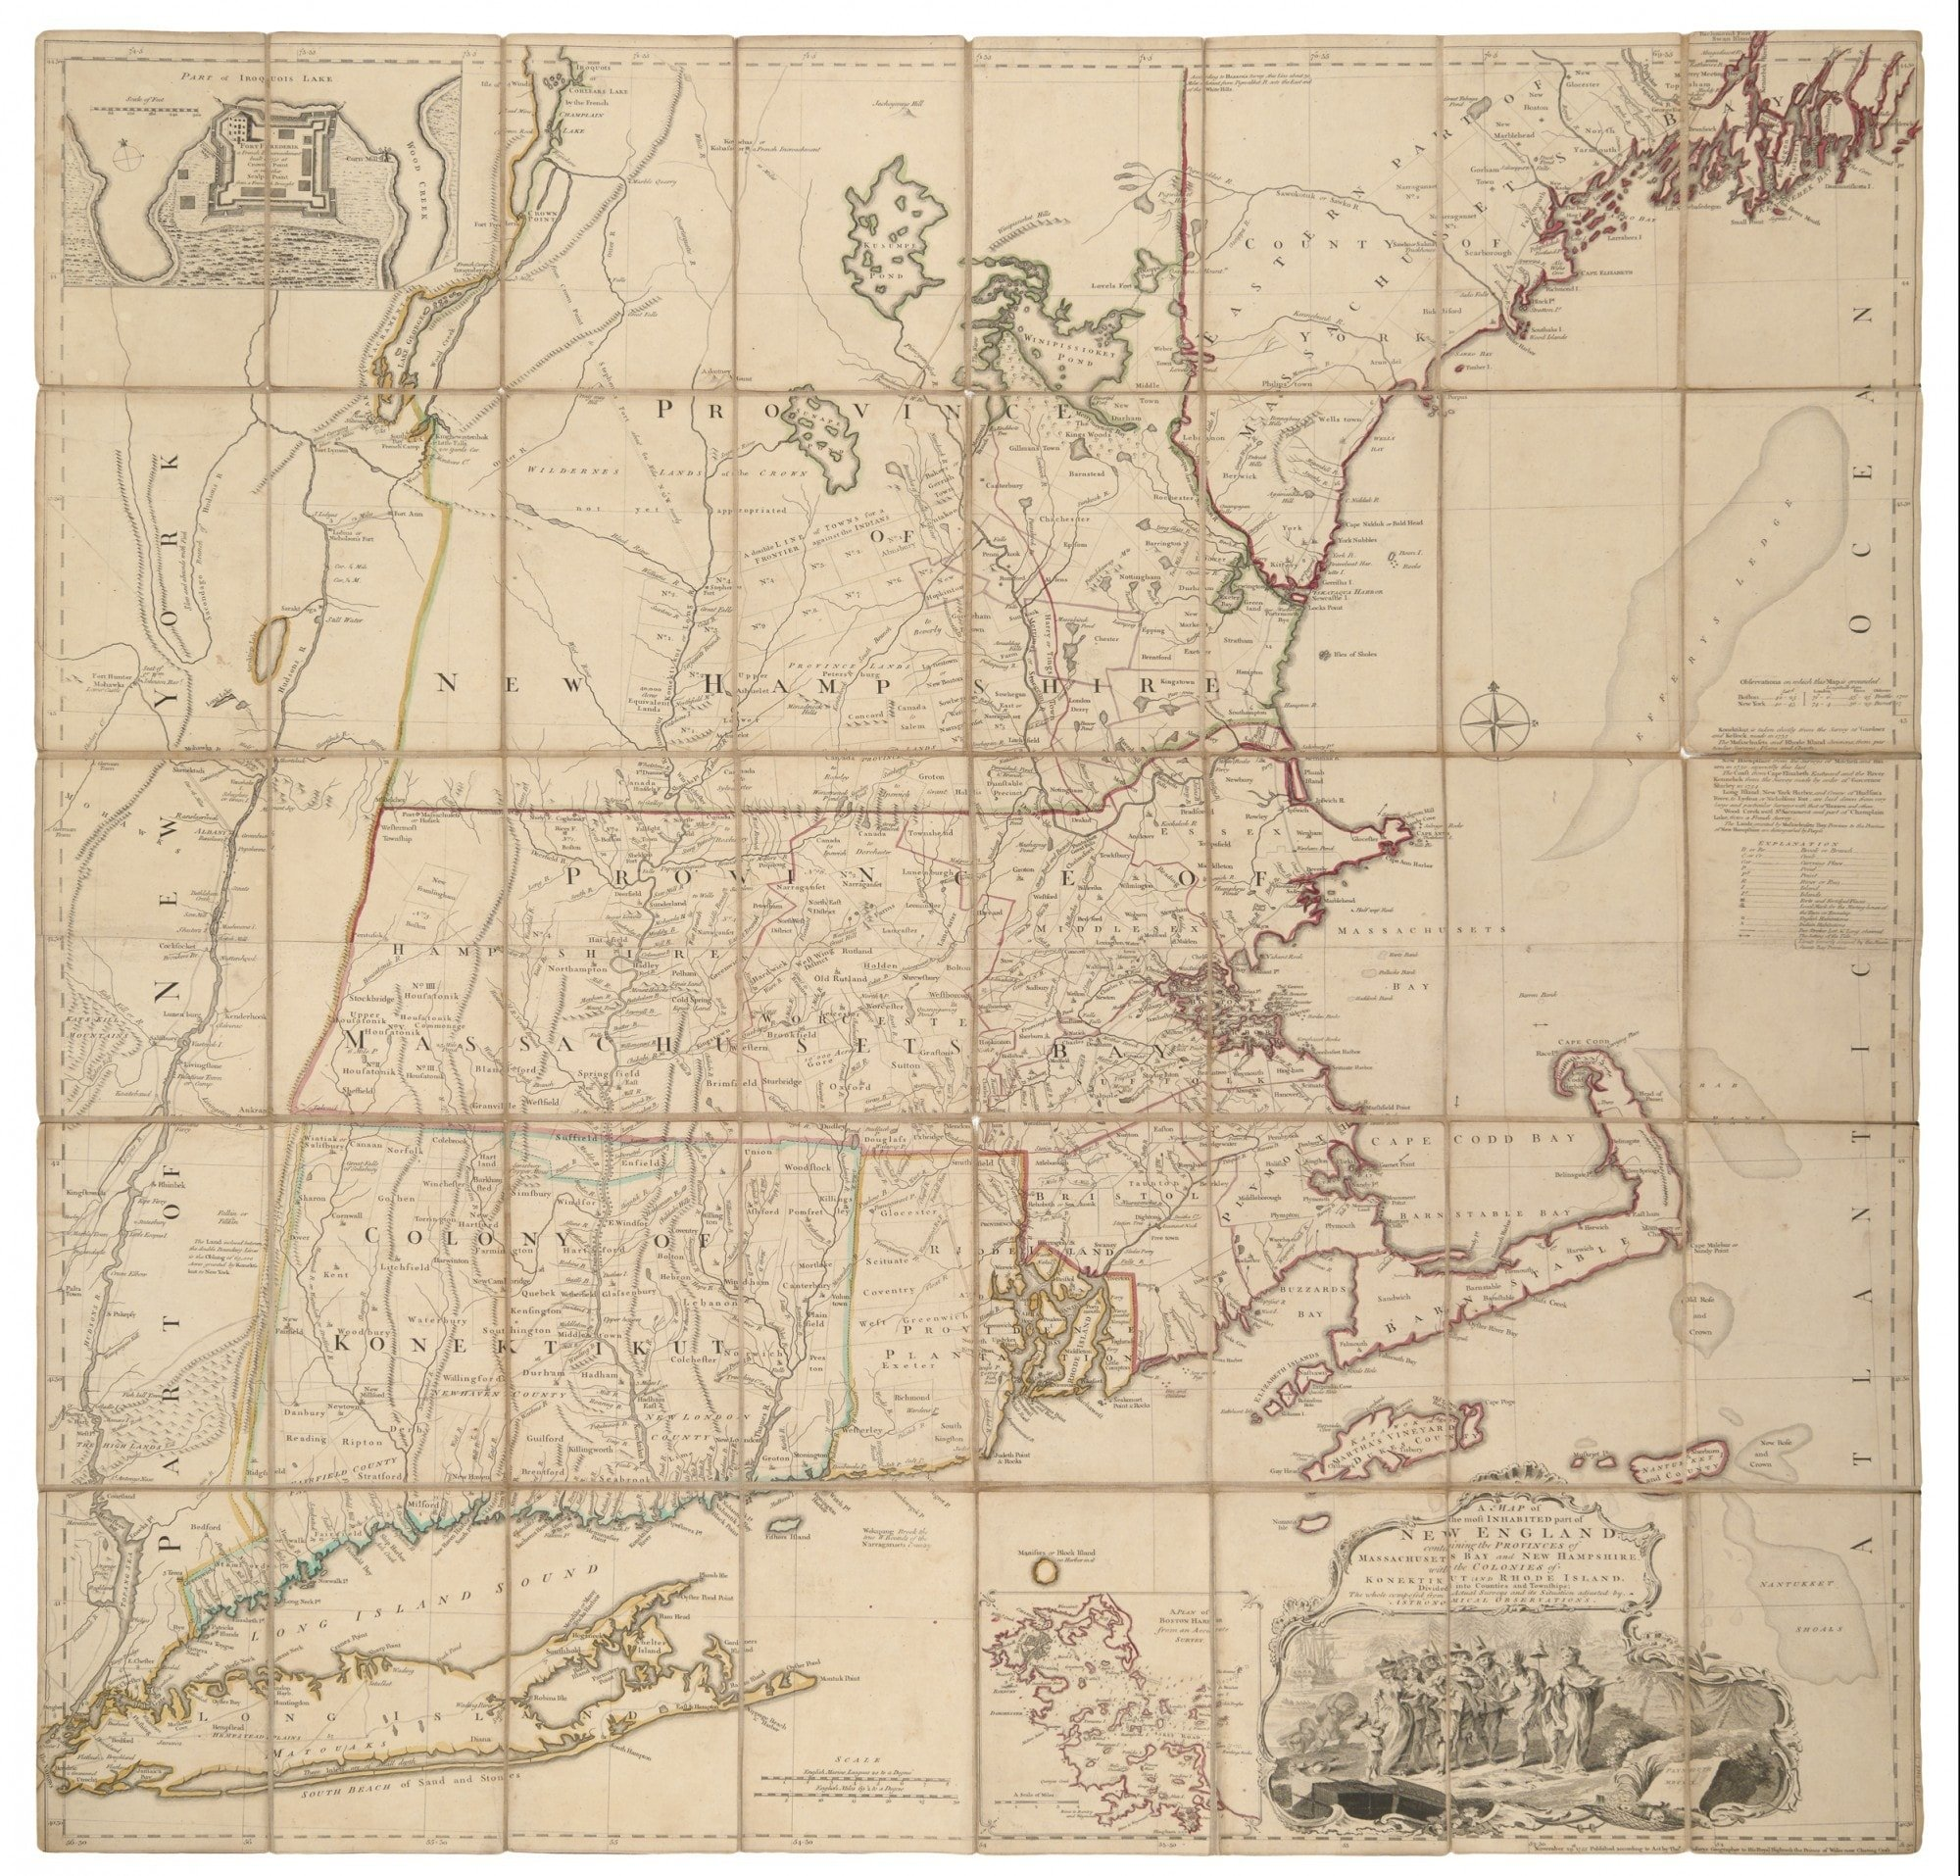 Image of: First State Of The Finest 18th Century Map Of New England Rare Antique Maps